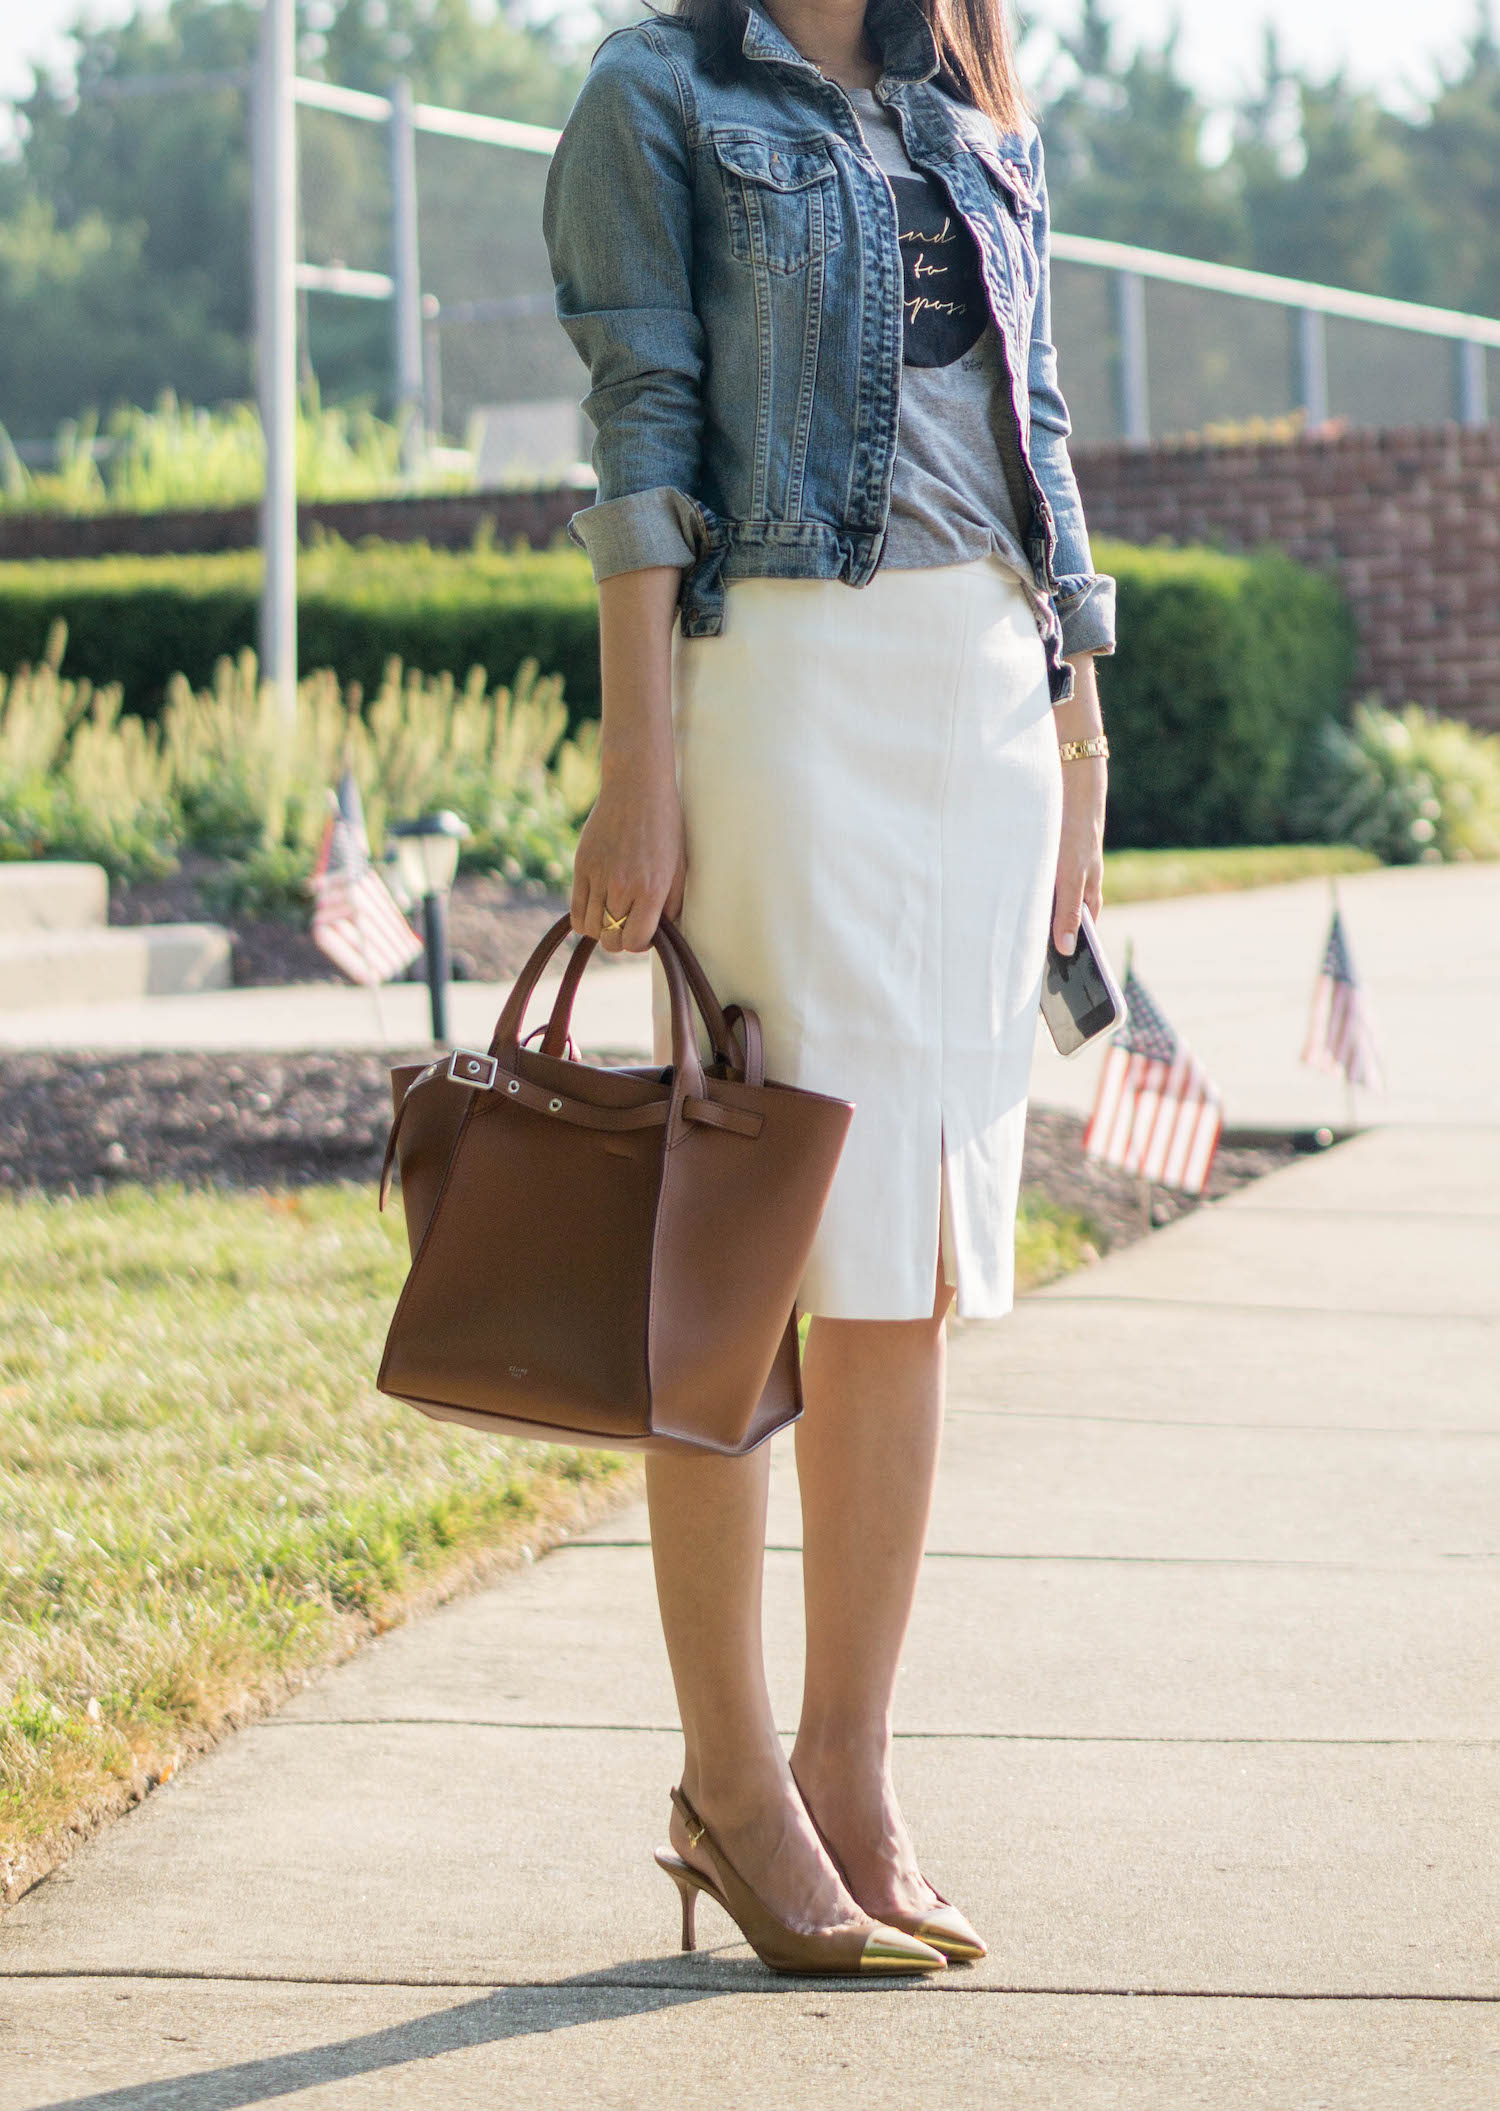 Chanel 18P crystal/pearl brooch, denim jacket, Celine small big bag, Ann Taylor front slit pencil skirt, Olivia Burton gold watch, Tory Burch Penelope metallic cap-toe slingback pump